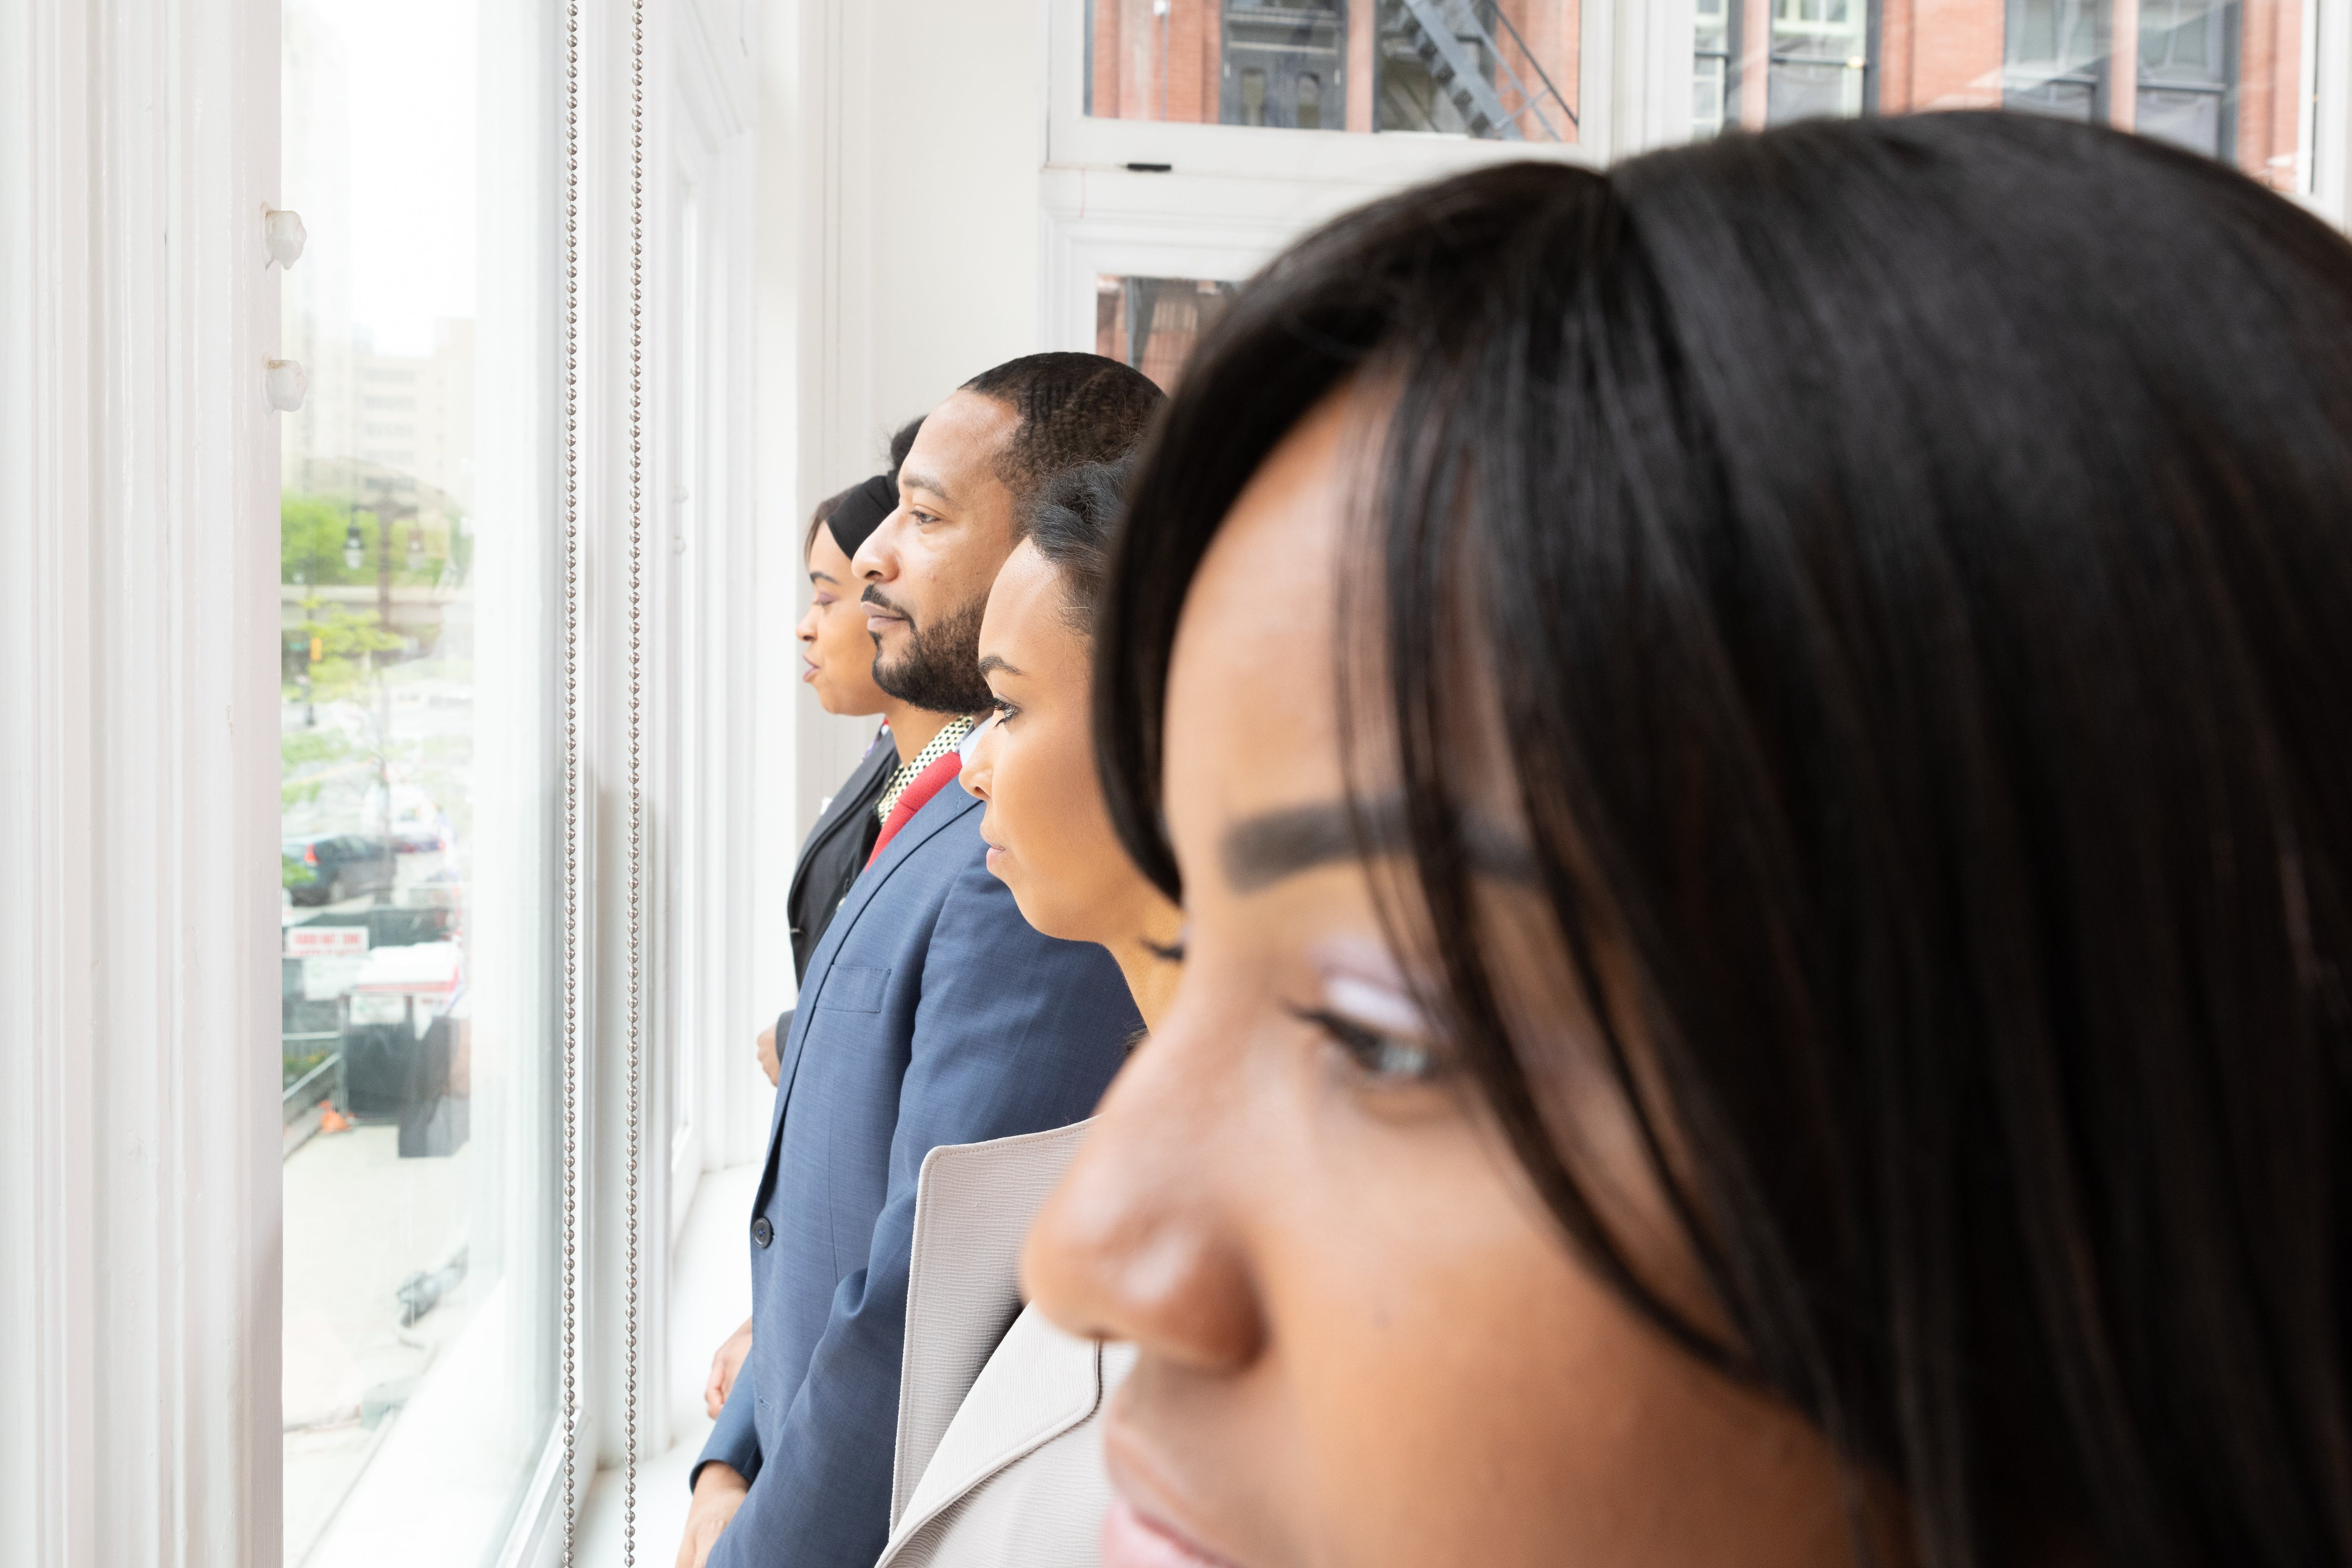 Group Of People Lining Up Near Glass Window